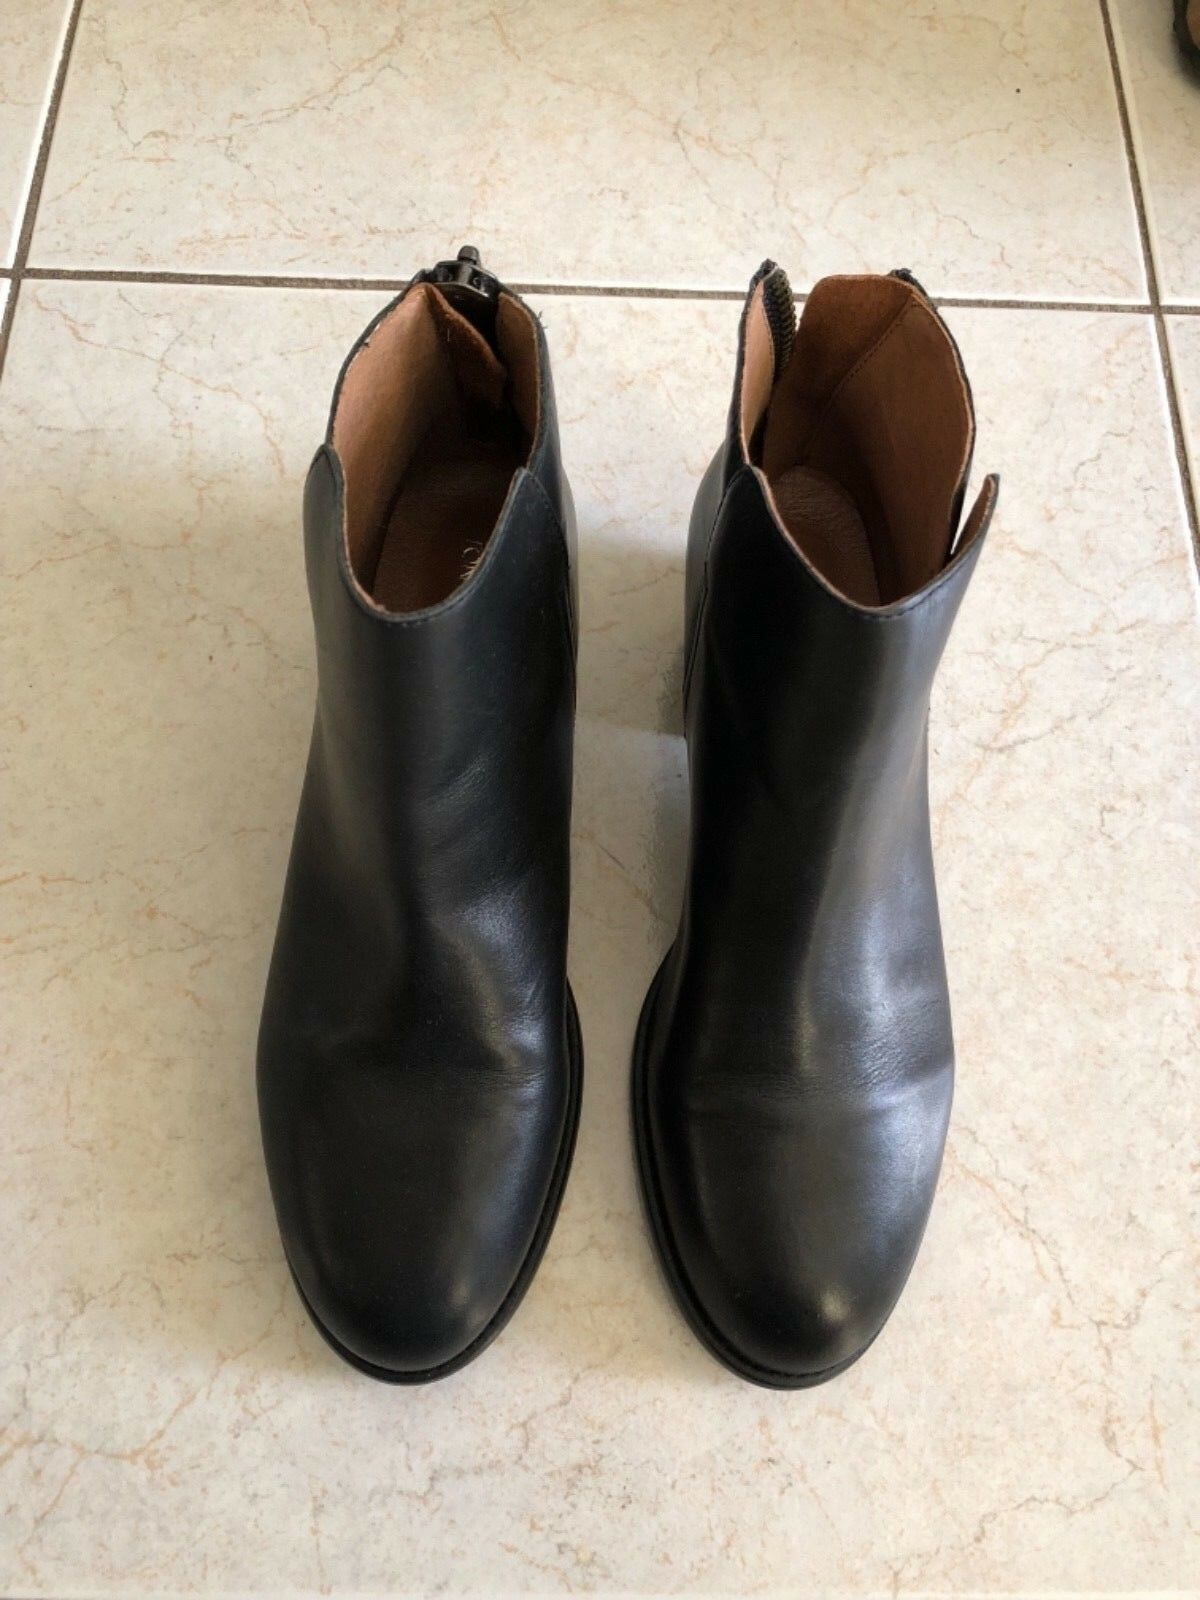 Tony Bianco - Ankle Boots - Leather - Size 7 - RRP $199.95